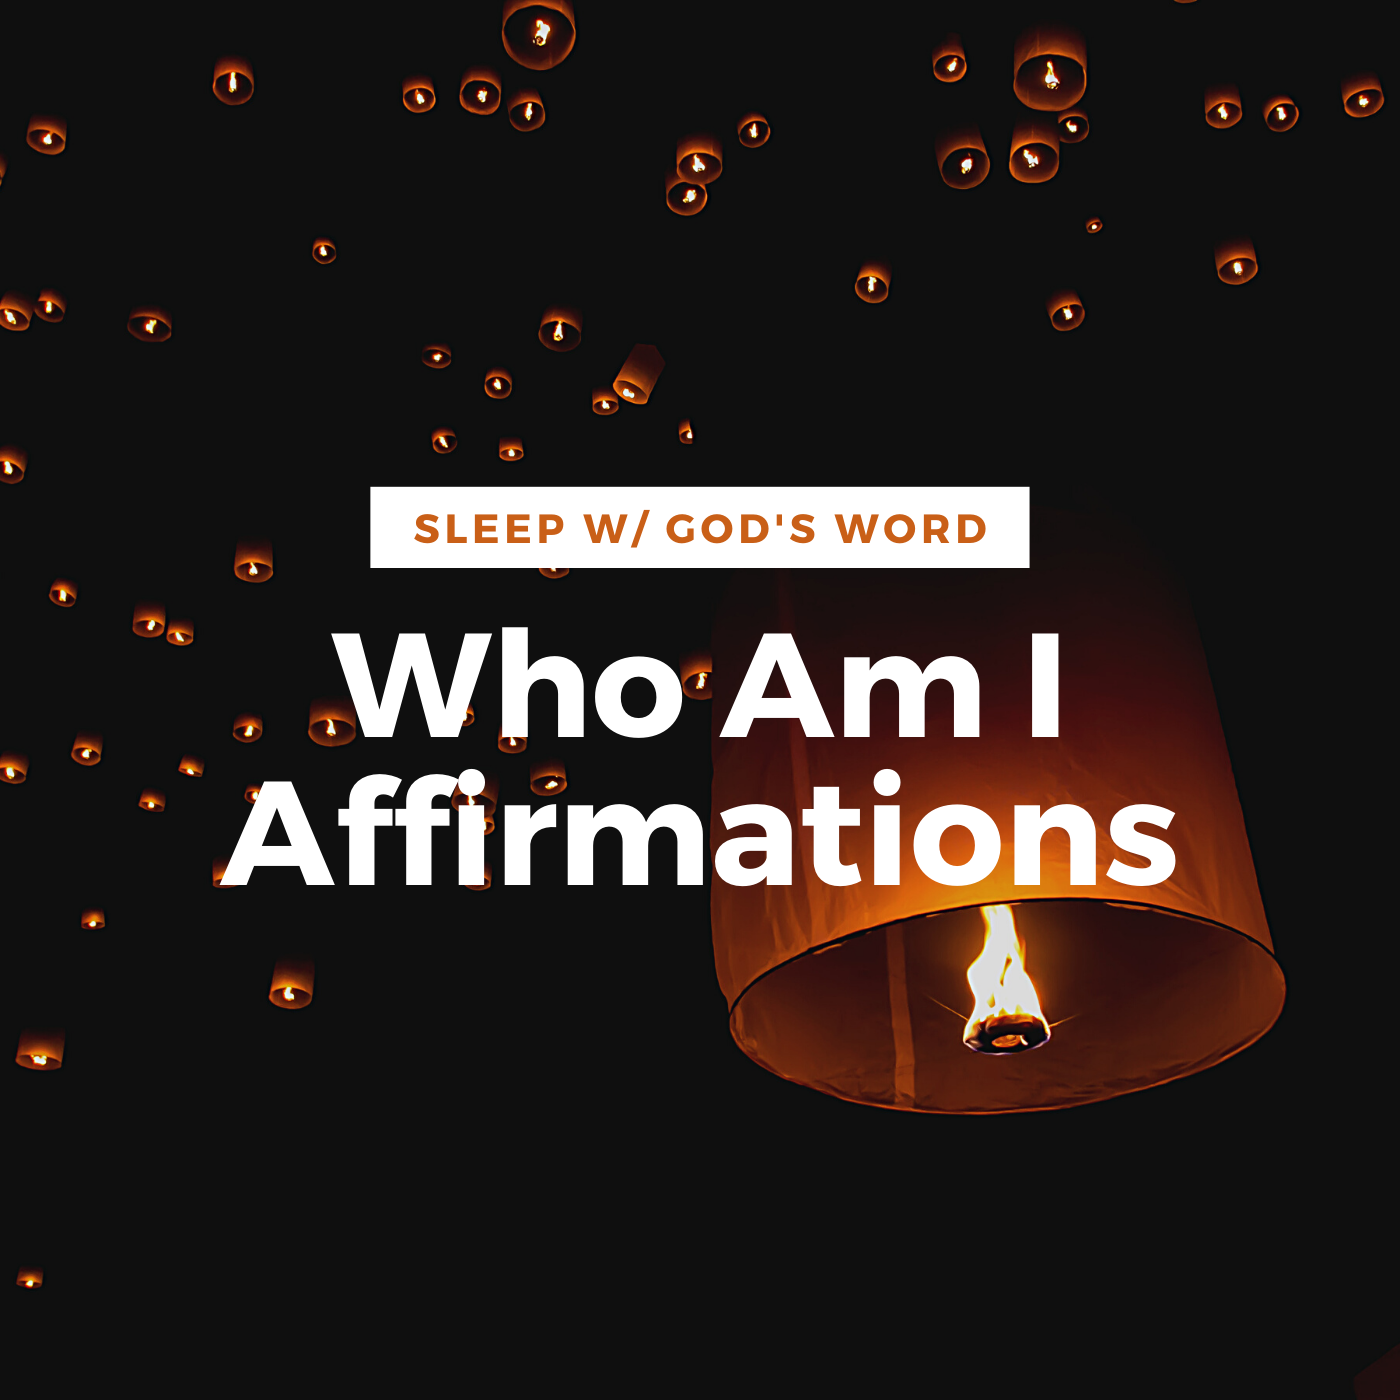 My True Identity Affirmations - Renew Your Mind While You Sleep